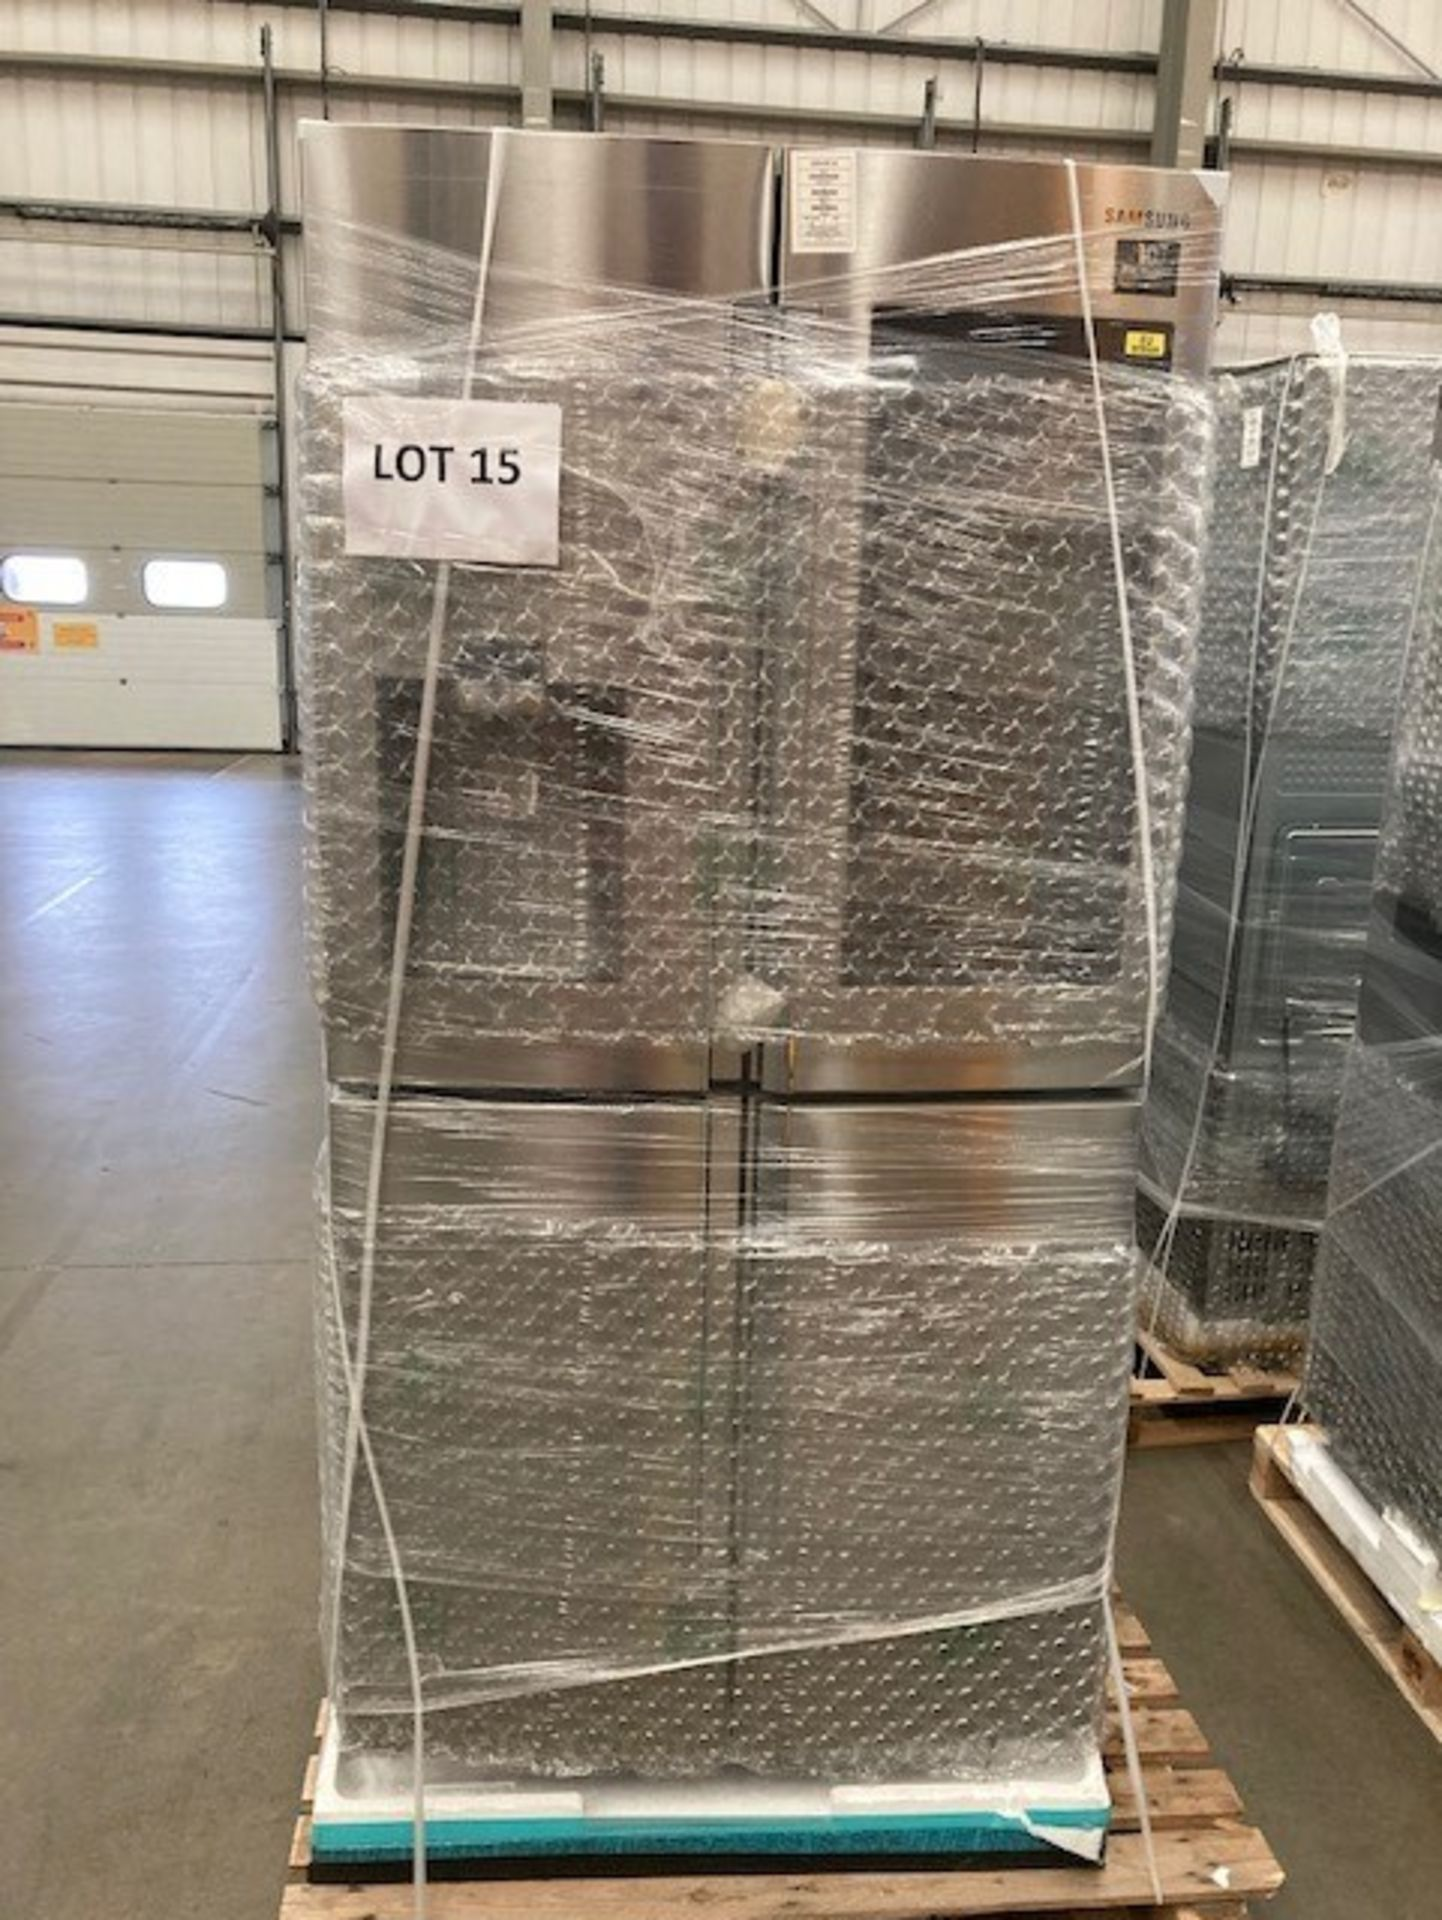 Pallet of 1 Samsung American Multi door. Latest selling price £3,799.99 - Image 3 of 9